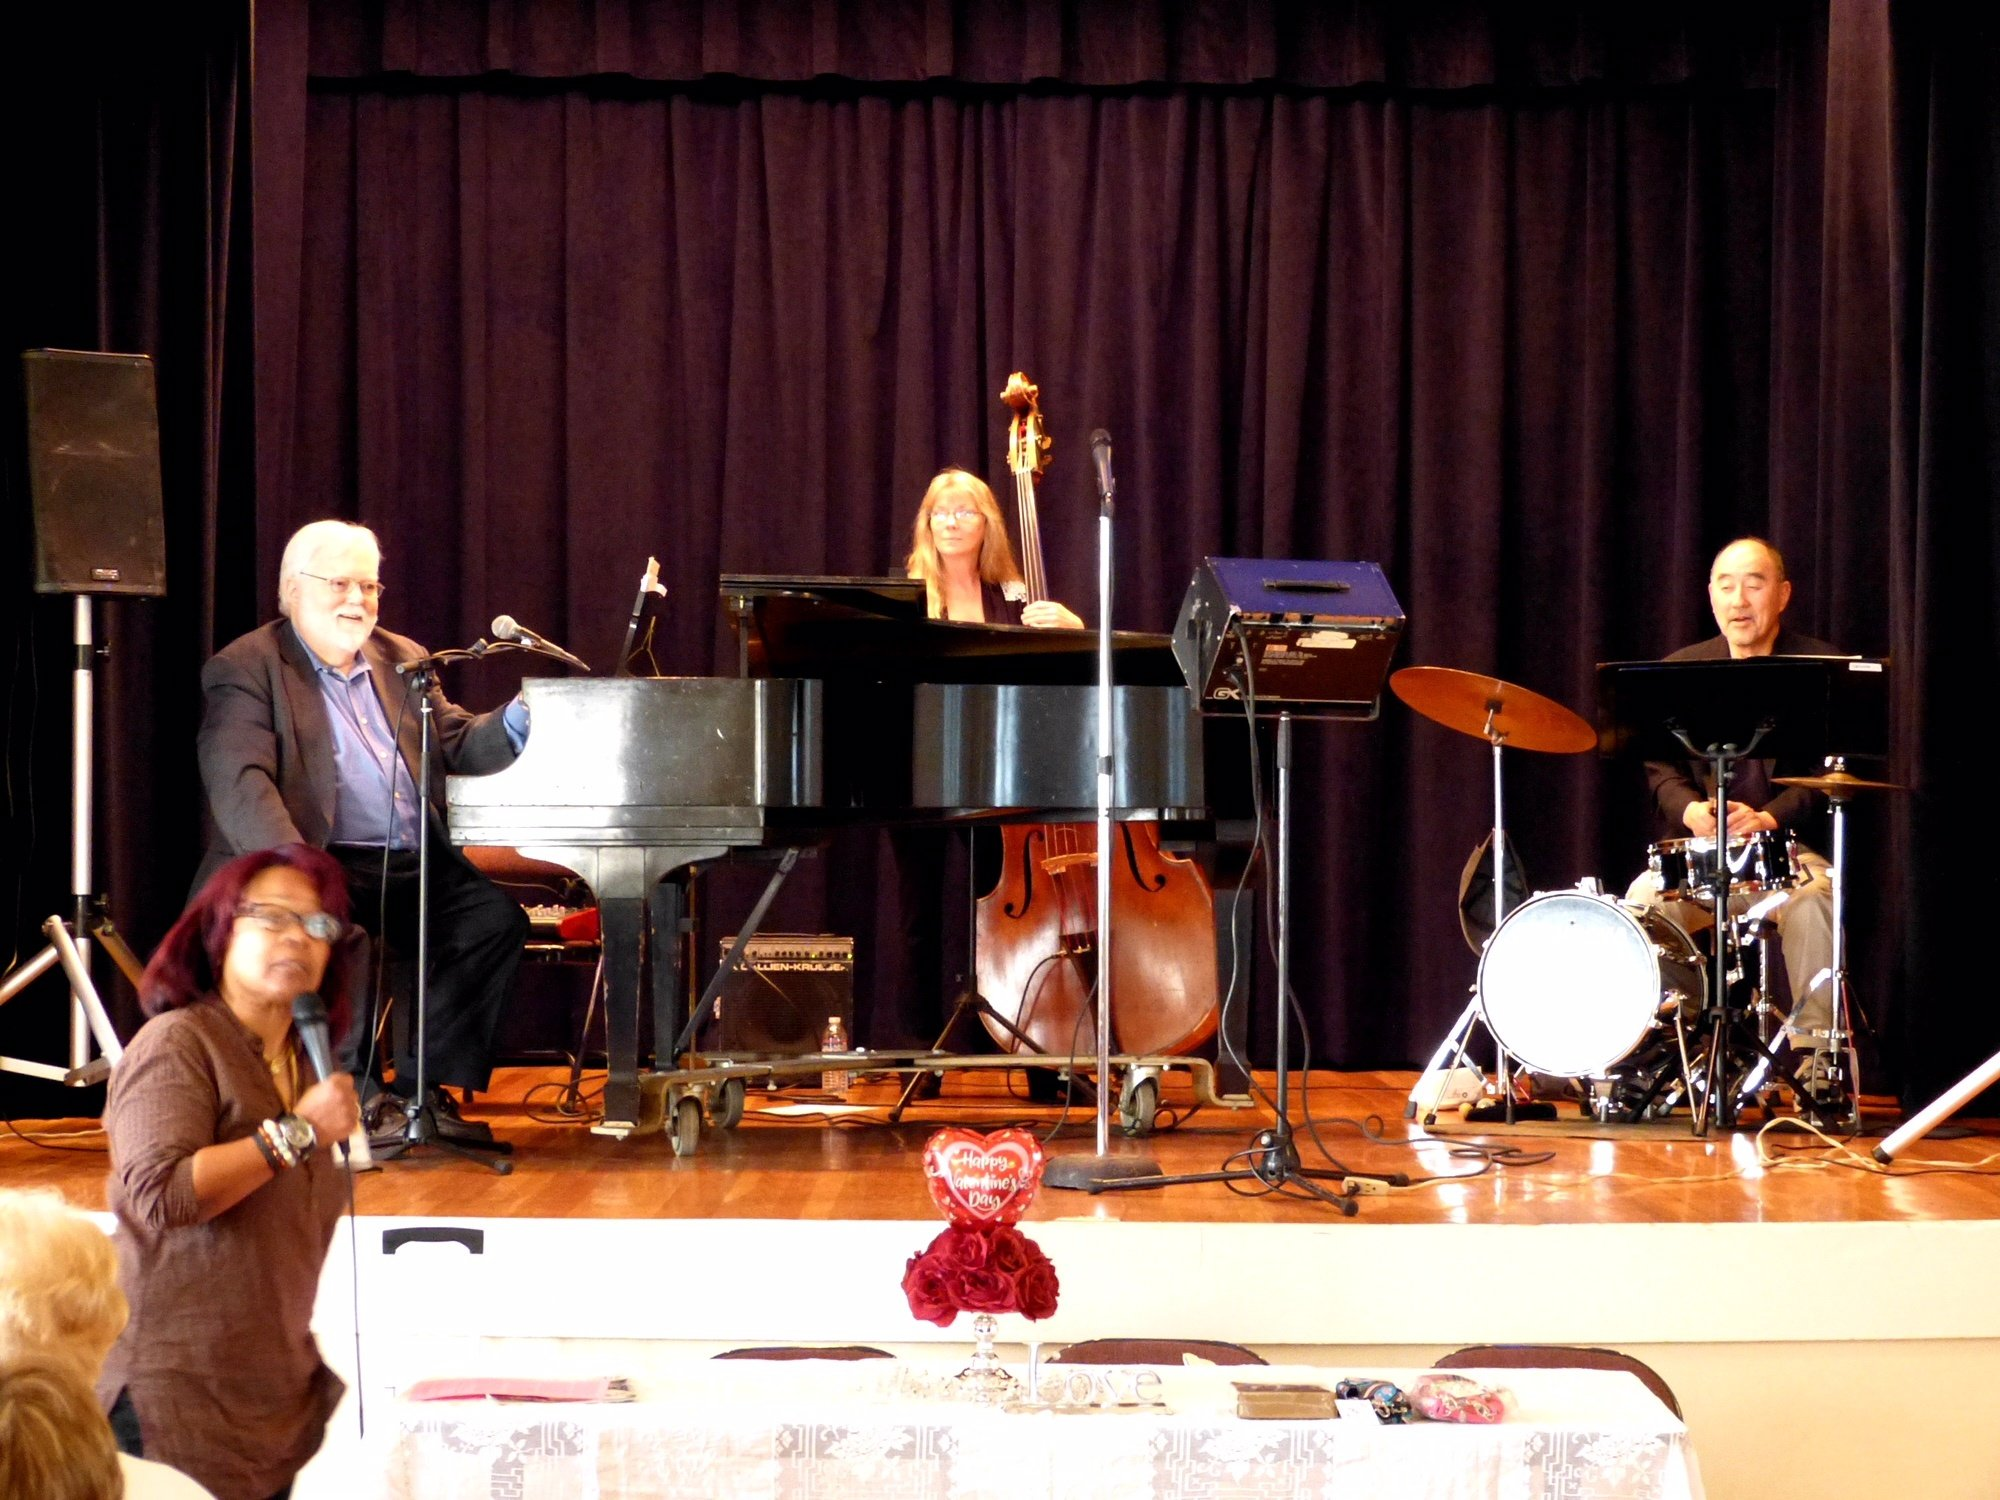 Karen Hutchinson (BMC Co-Pres.), Larry Dunlap (piano), Ruth Davis (bass), Akira Tana (drums)